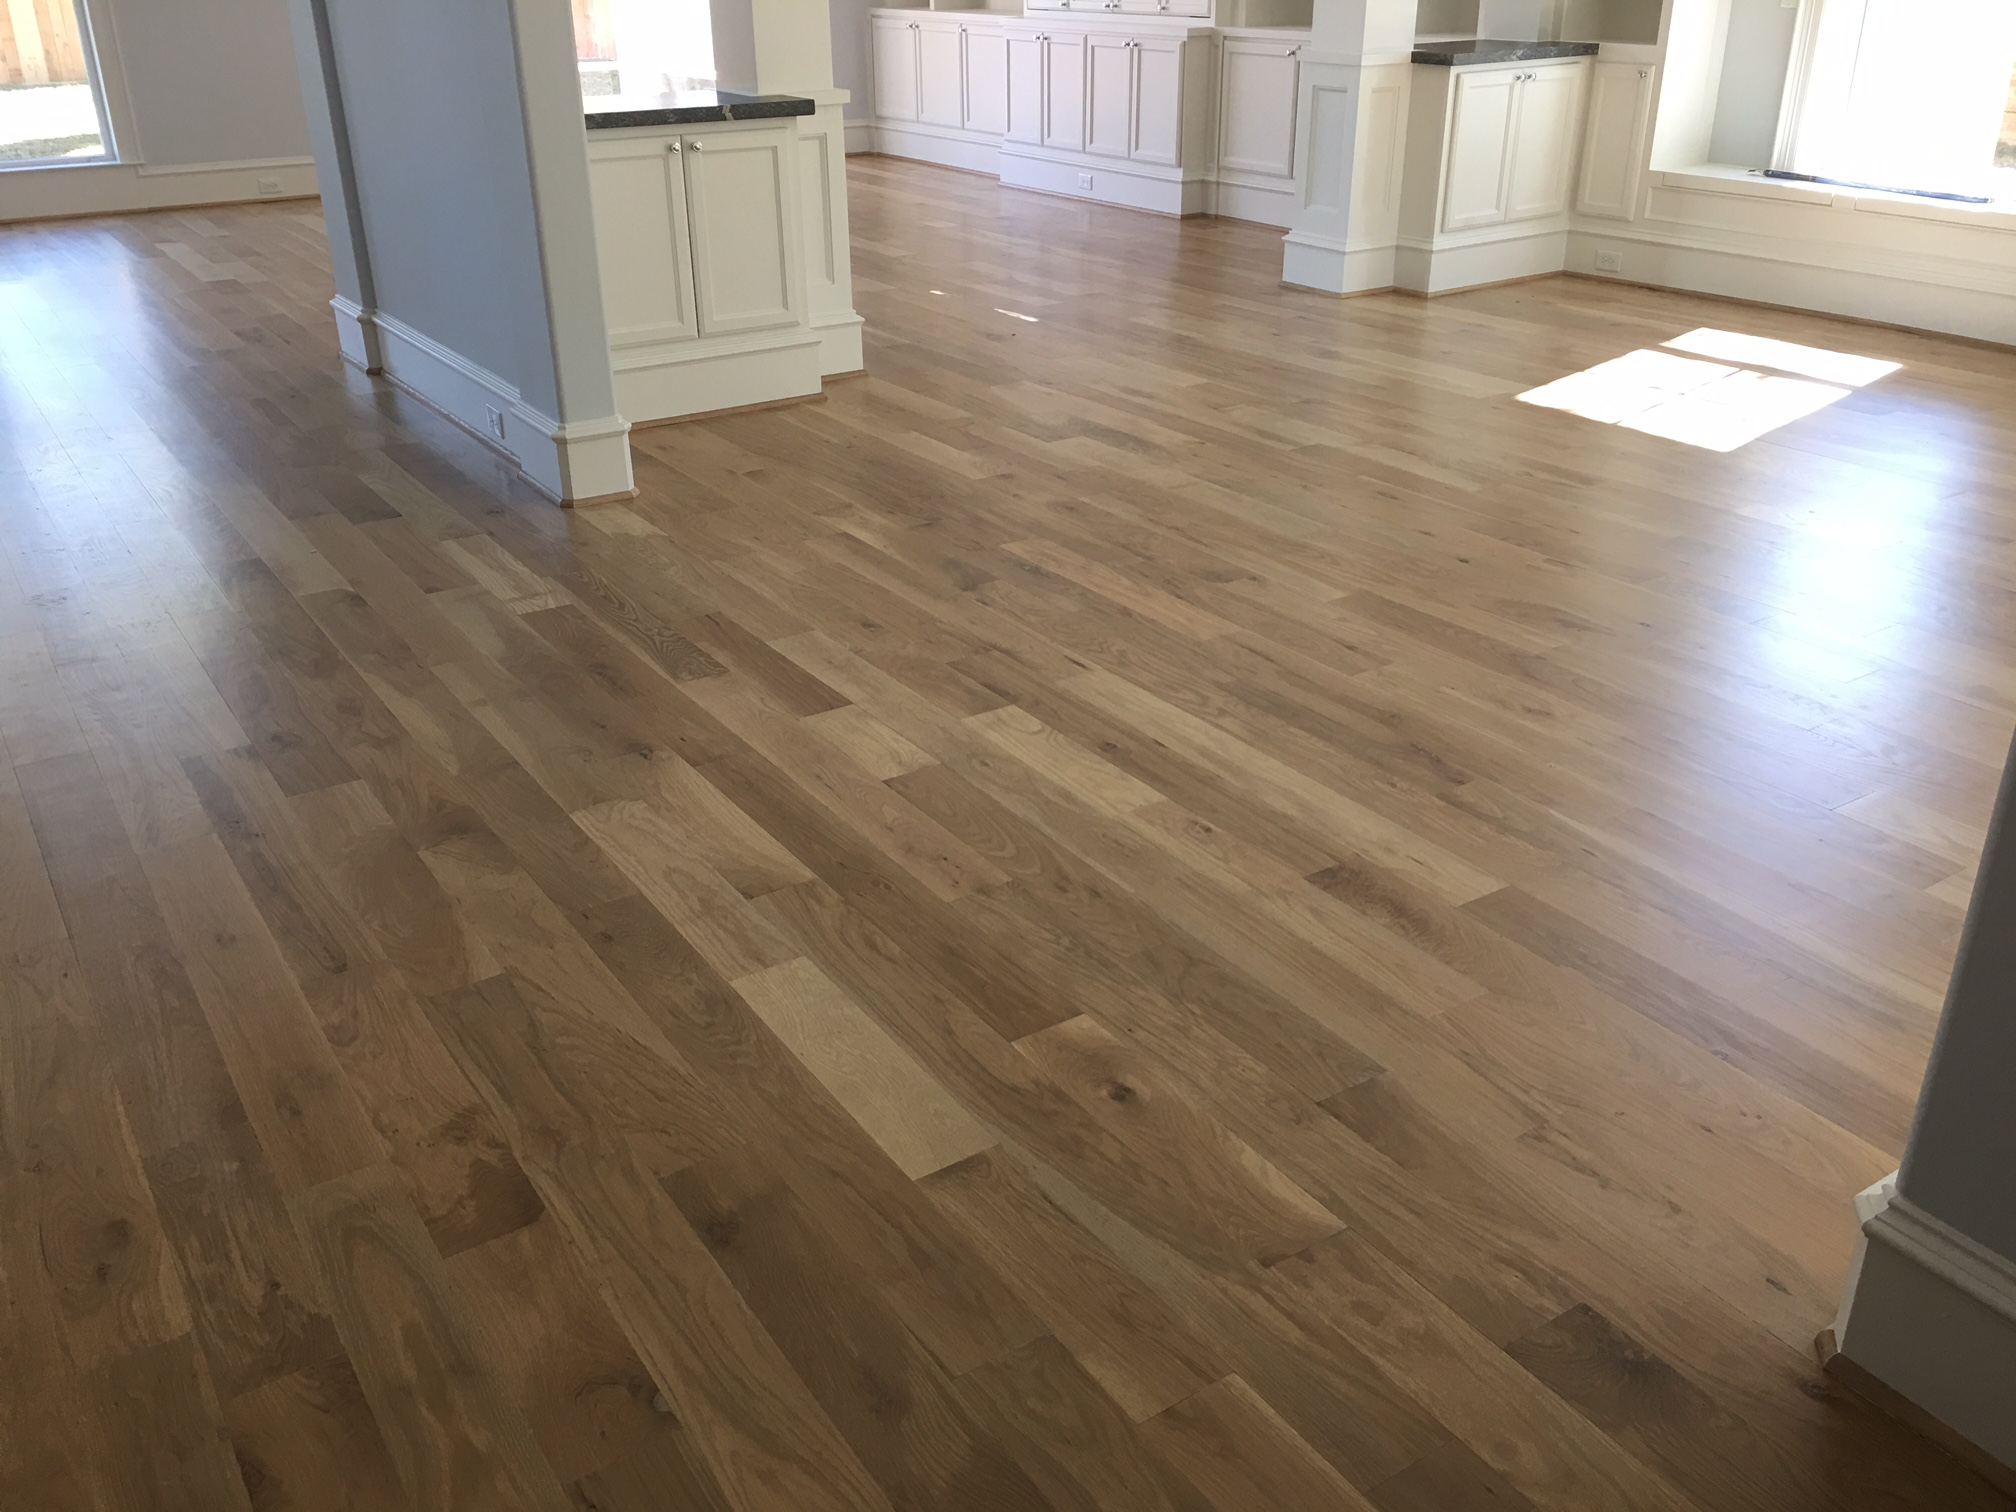 Abraham floors houston 39 s hardwood flooring company Wood flooring houston